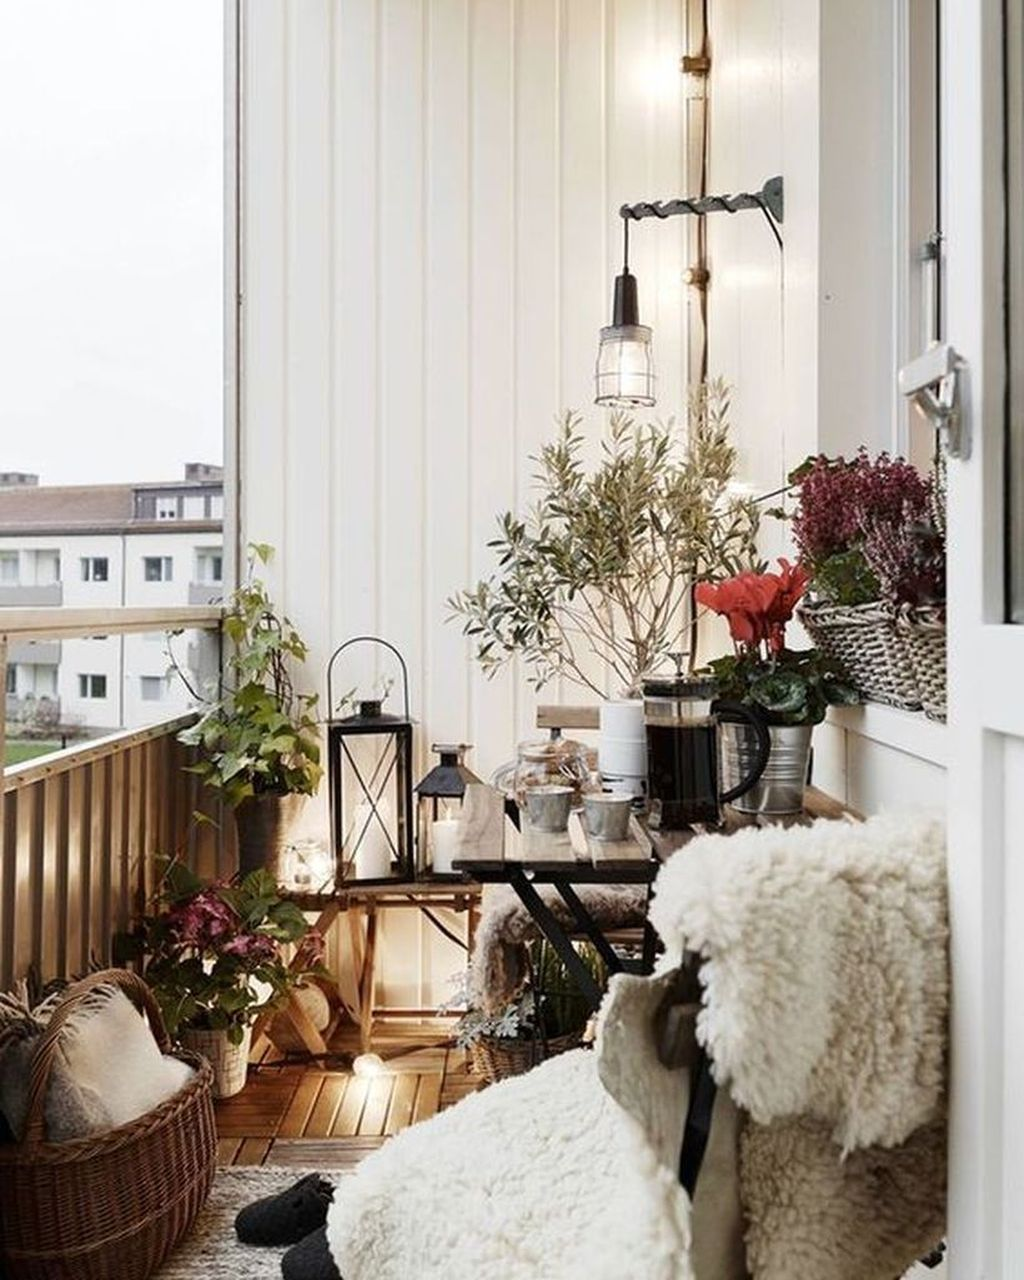 Stunning Apartment Balcony Decor Ideas For This Winter 03